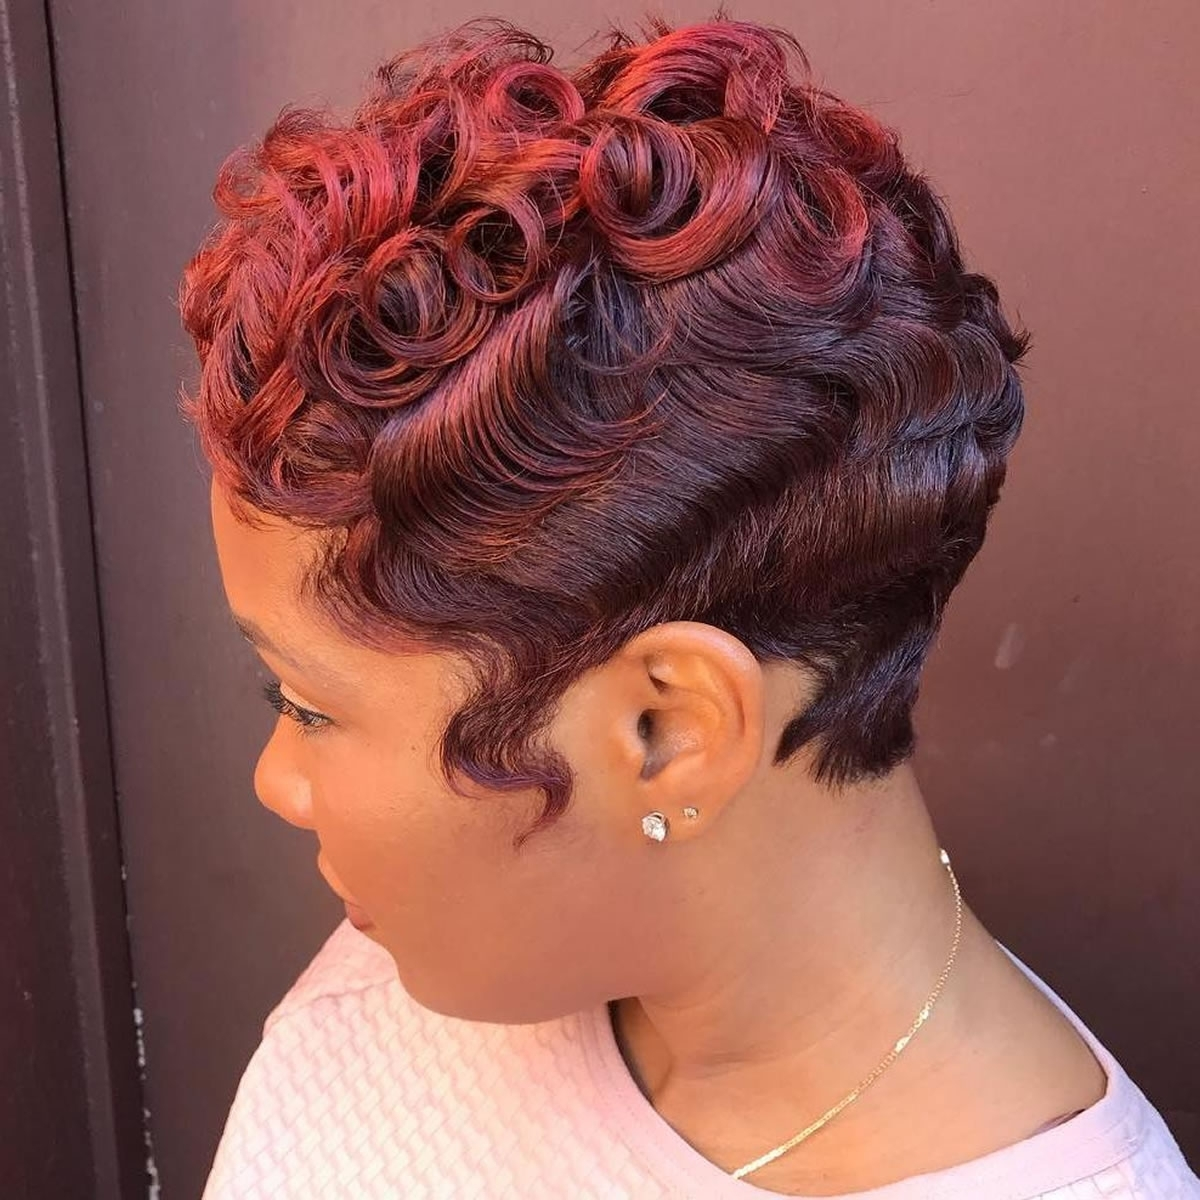 Fashionable Ravishing Red Pixie Hairstyles For 30 Finger Wave Short Hairstyles – Trendy Haircut Ideas For Women (View 9 of 20)